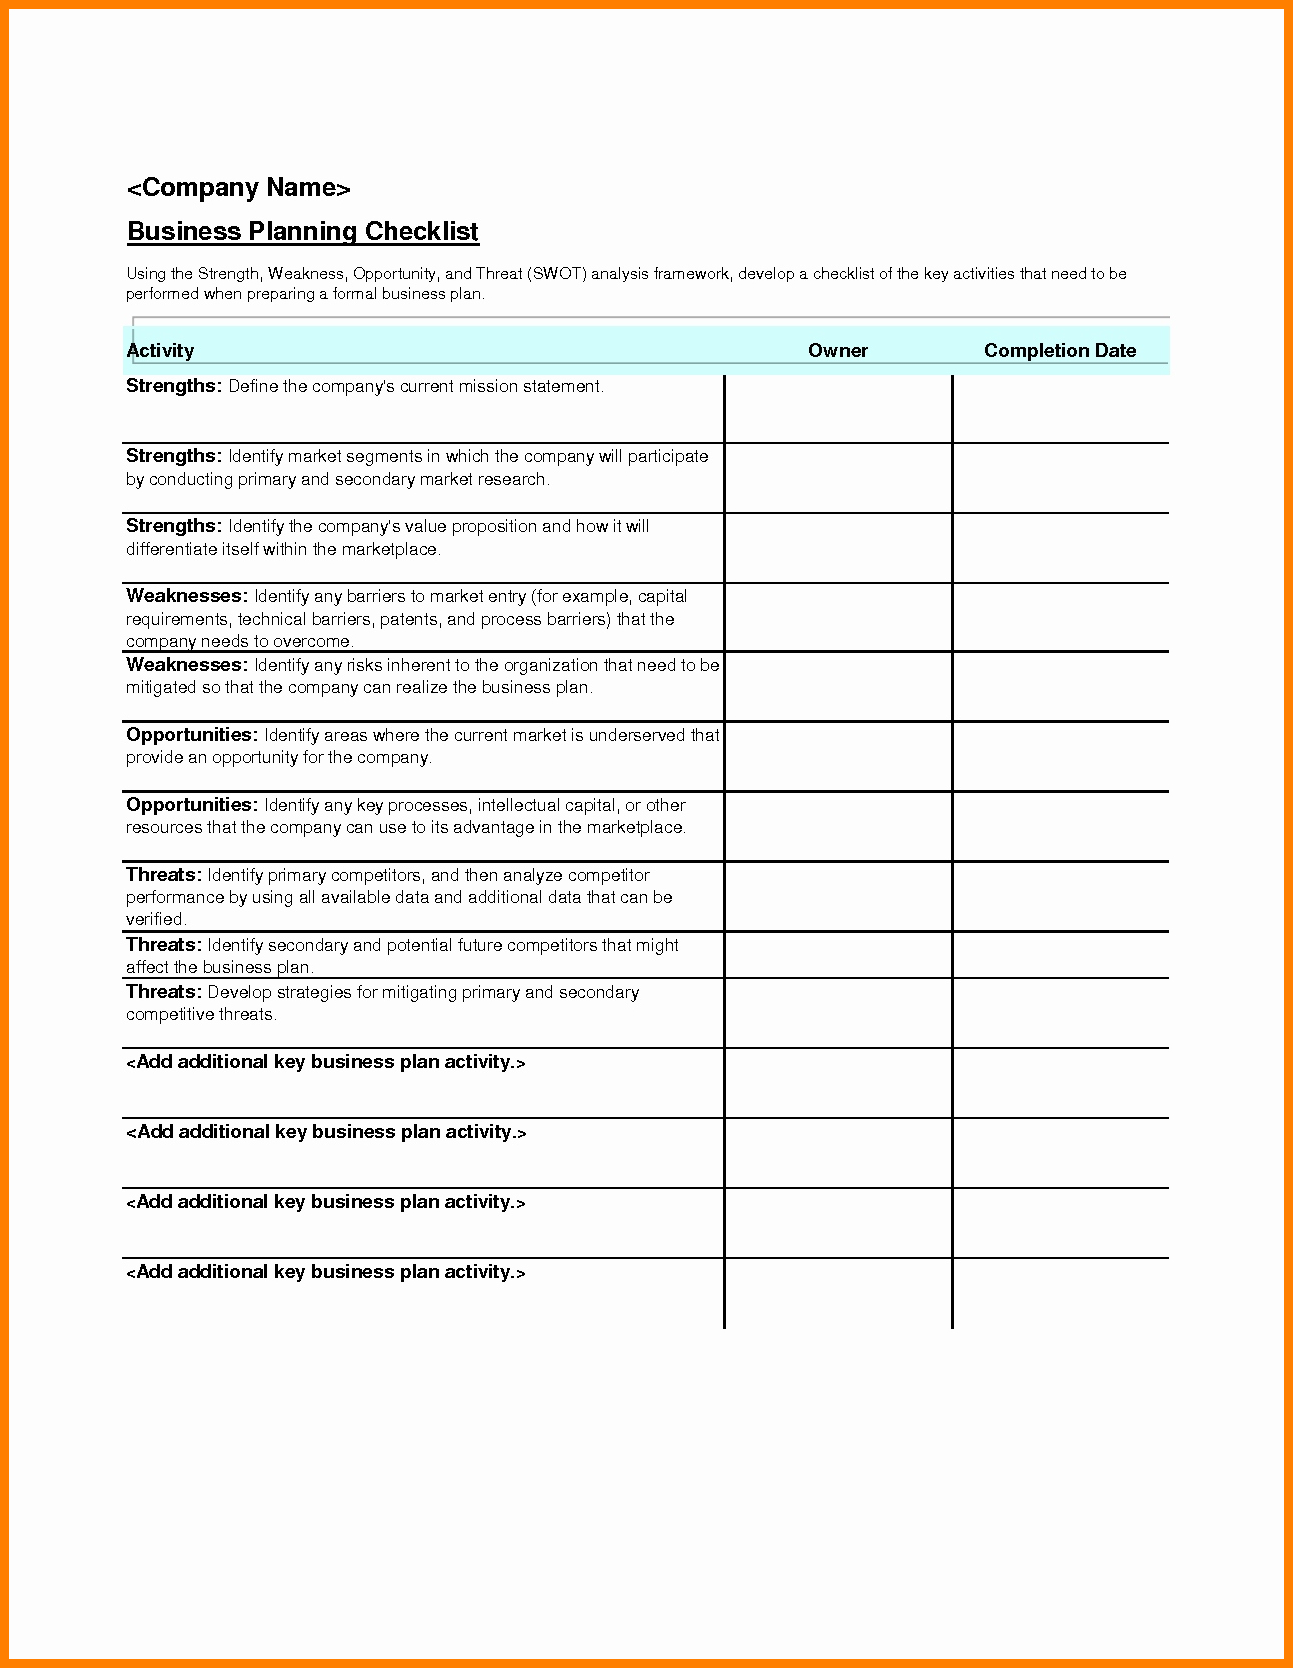 Business Event Checklist Commonly Missed Planning Details pertaining to Event Planning Template Excel